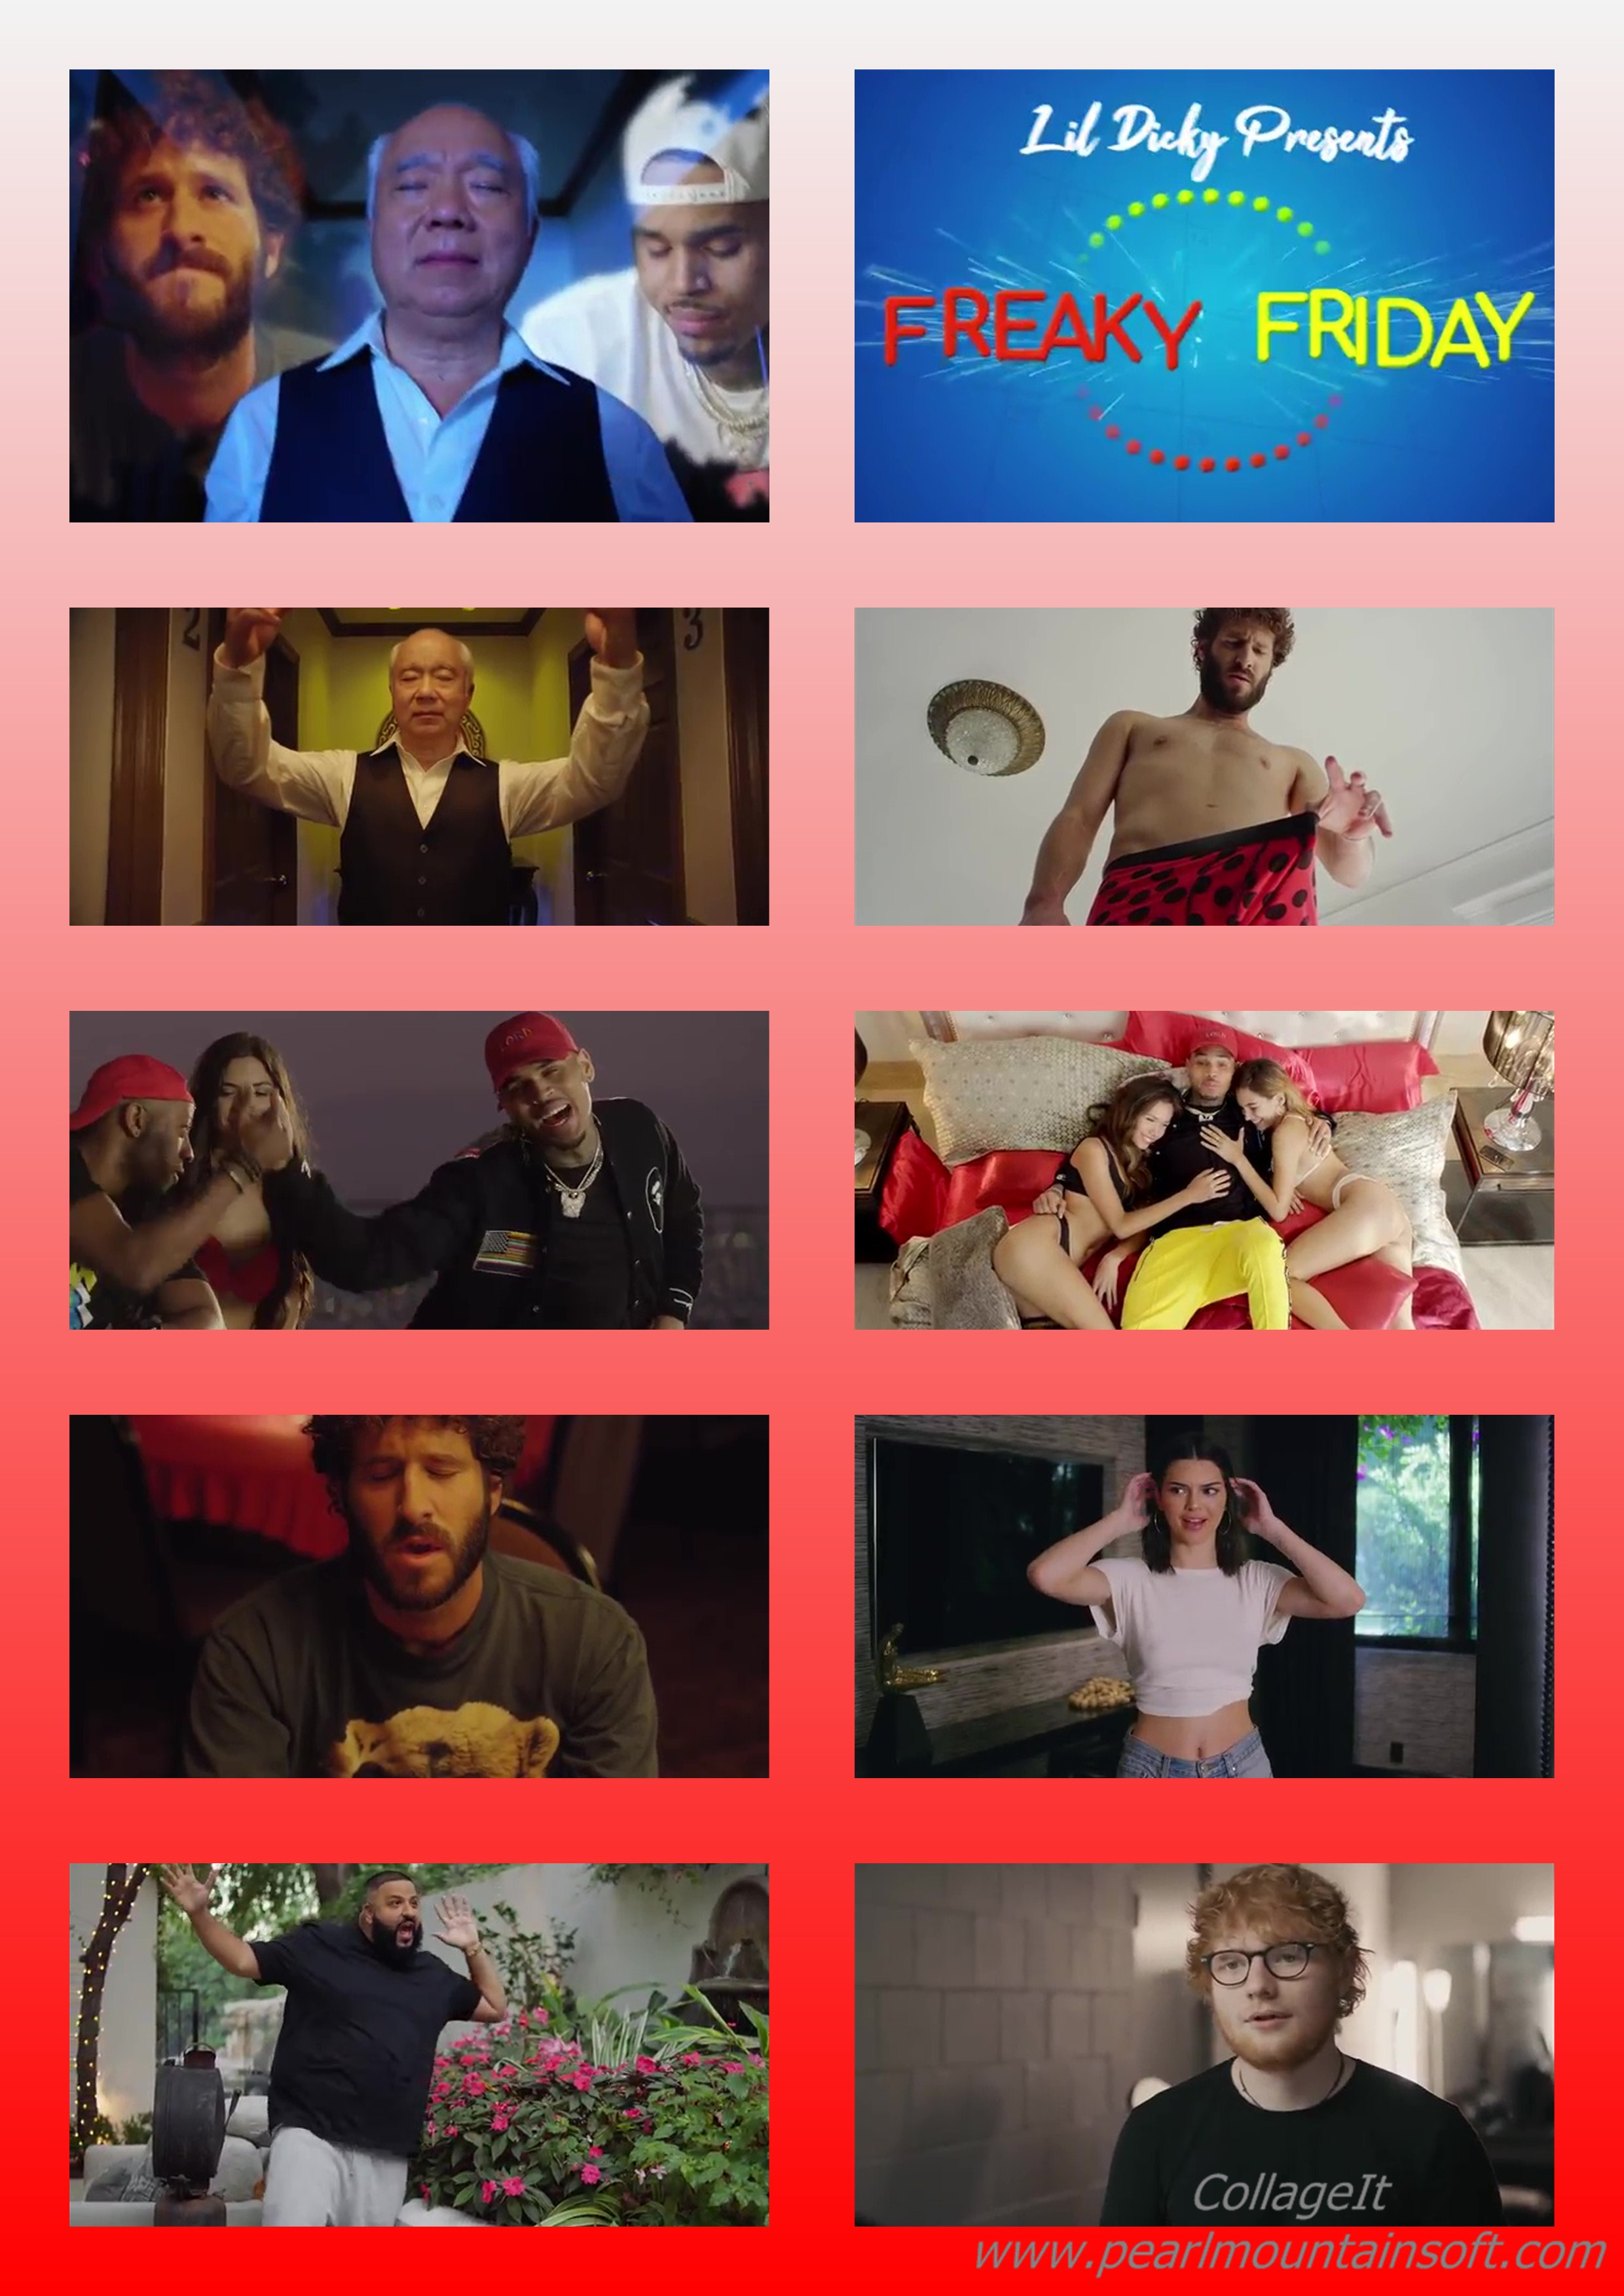 """(+LYRICS+TRANSLATION+MEANING) MUSIC REVIEW: FREAKY FRIDAY BY LIL DICKY FT CHRIS BROWN """"I REALLY NEED TO FIND A WAY OF KNOWING IF THESE INDIANS HAVE REALLY GOT VOODOOS"""""""